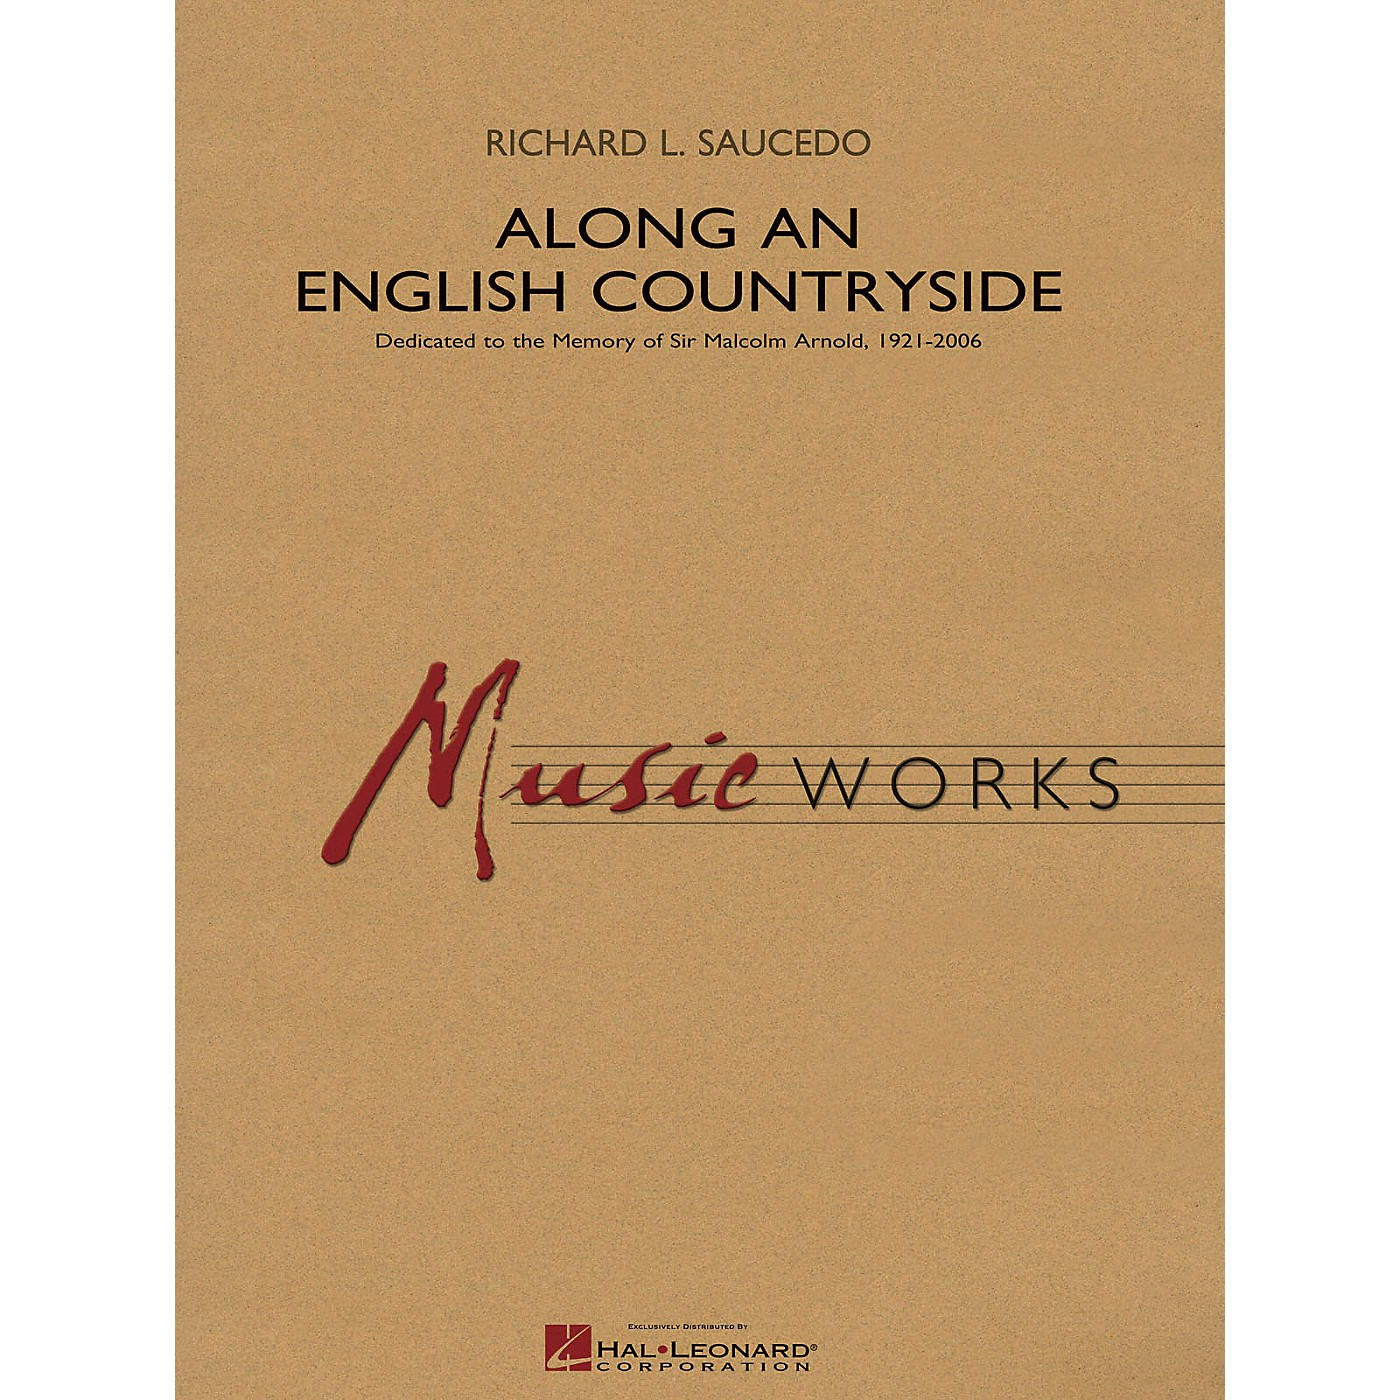 Hal Leonard Along an English Countryside Concert Band Level 5 Composed by Richard L. Saucedo thumbnail